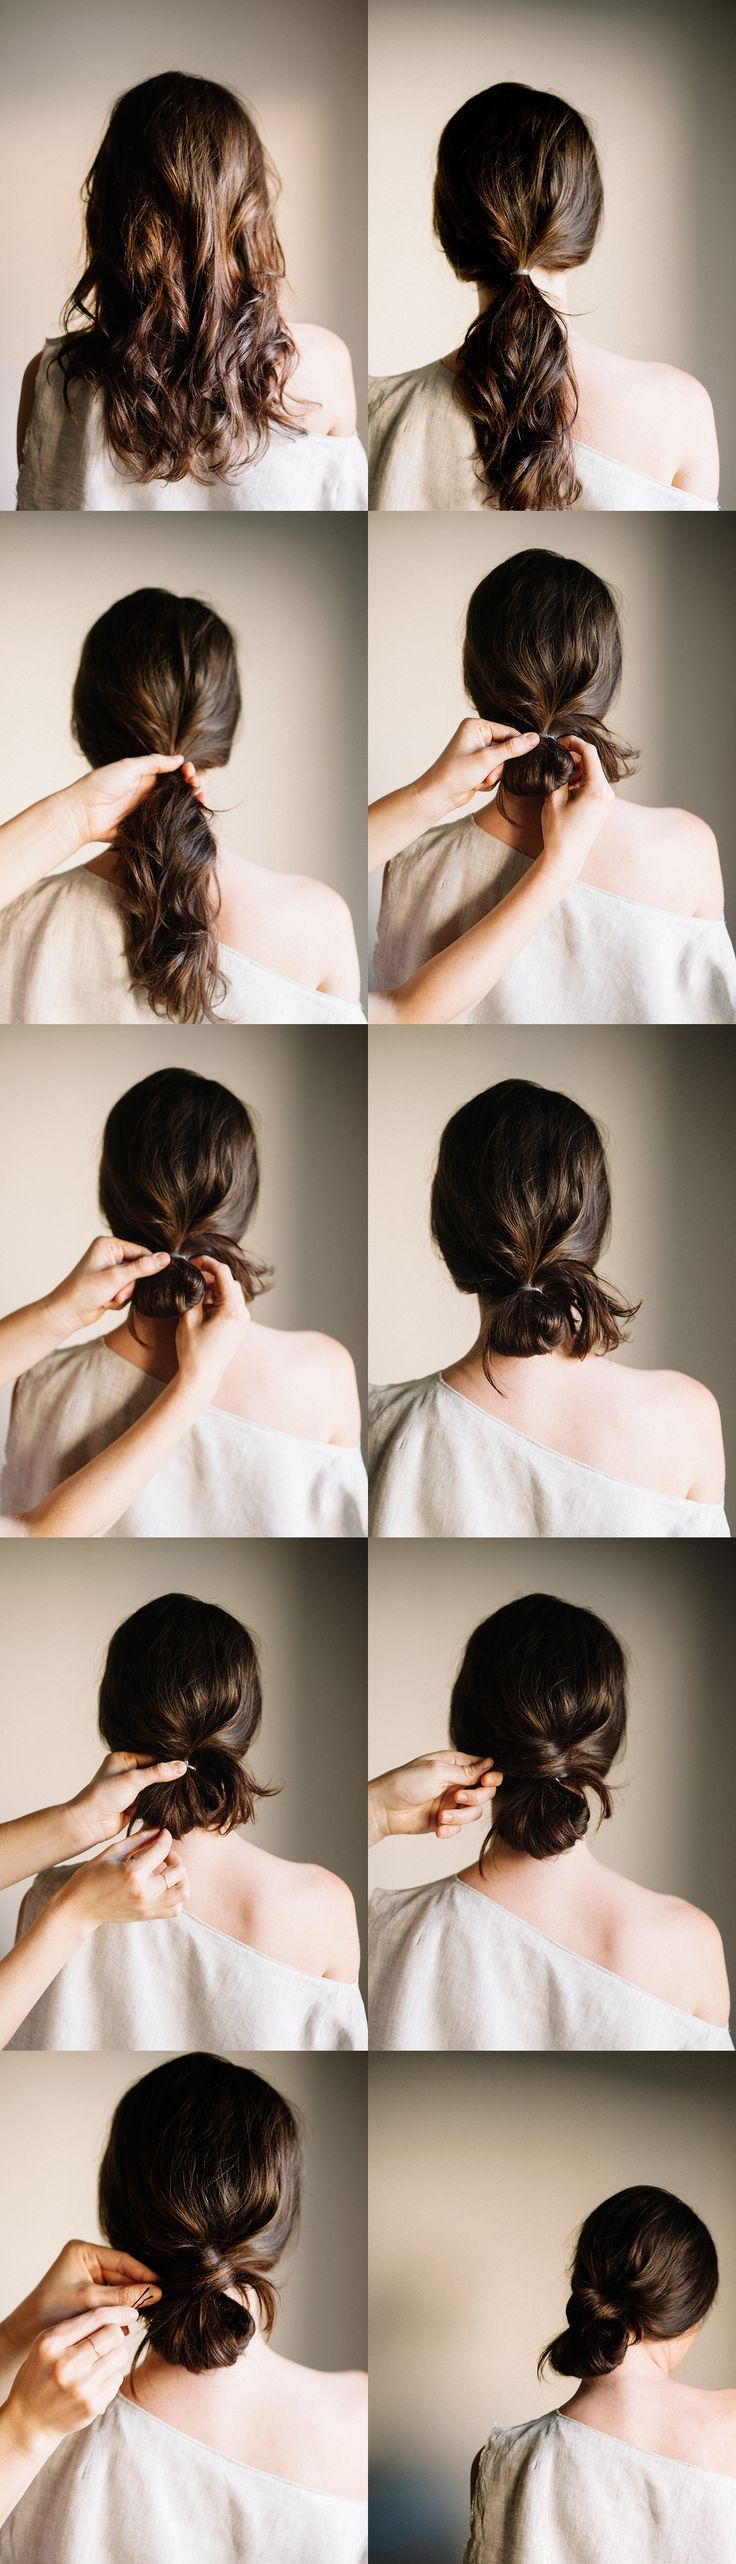 DIY Low Knot